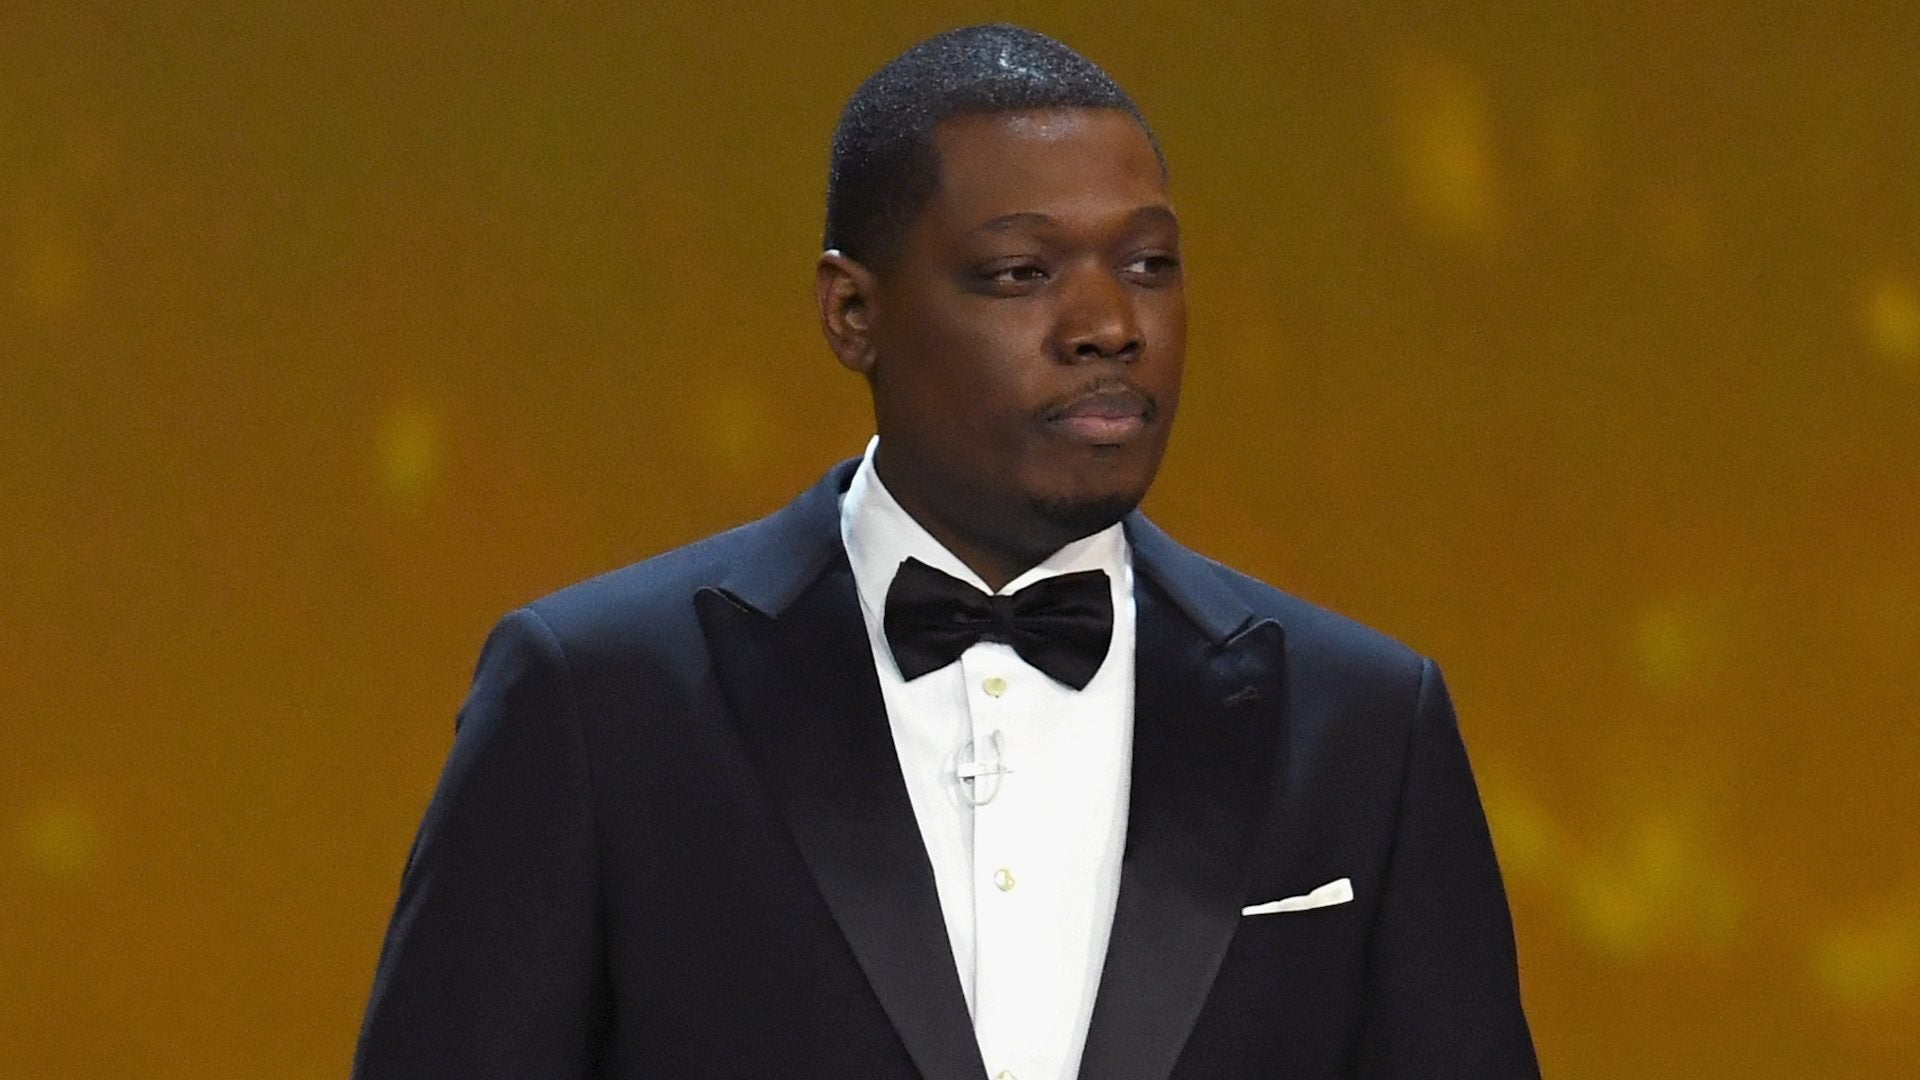 Michael Che's Grandmother Dies From COVID-19